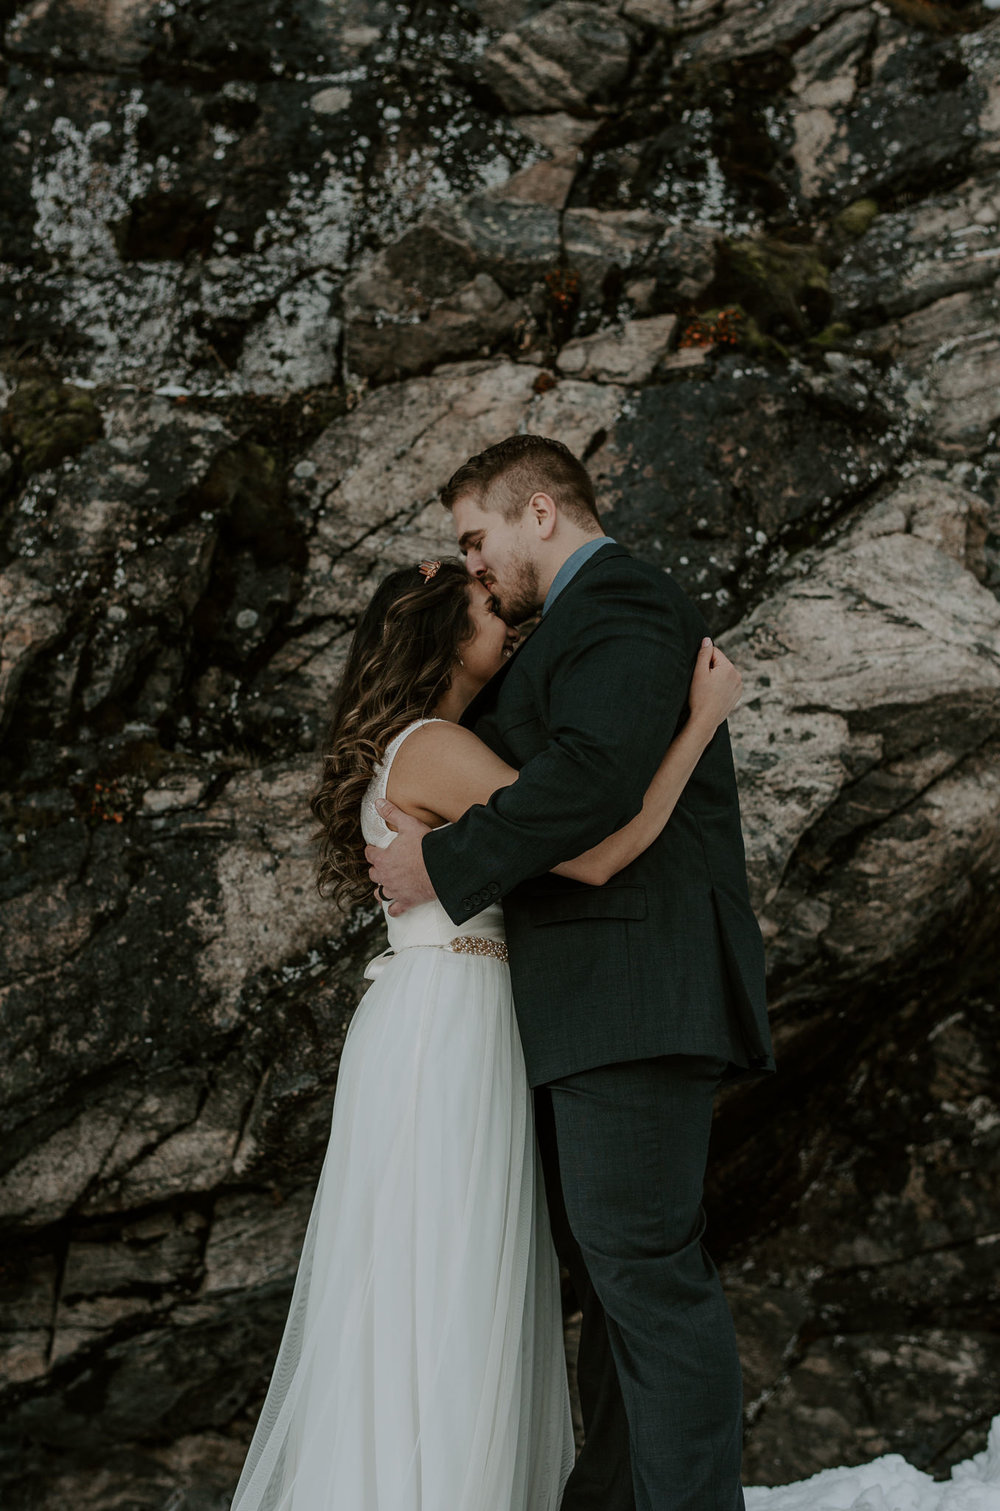 Hiking elopement in Rocky Mountain National Park